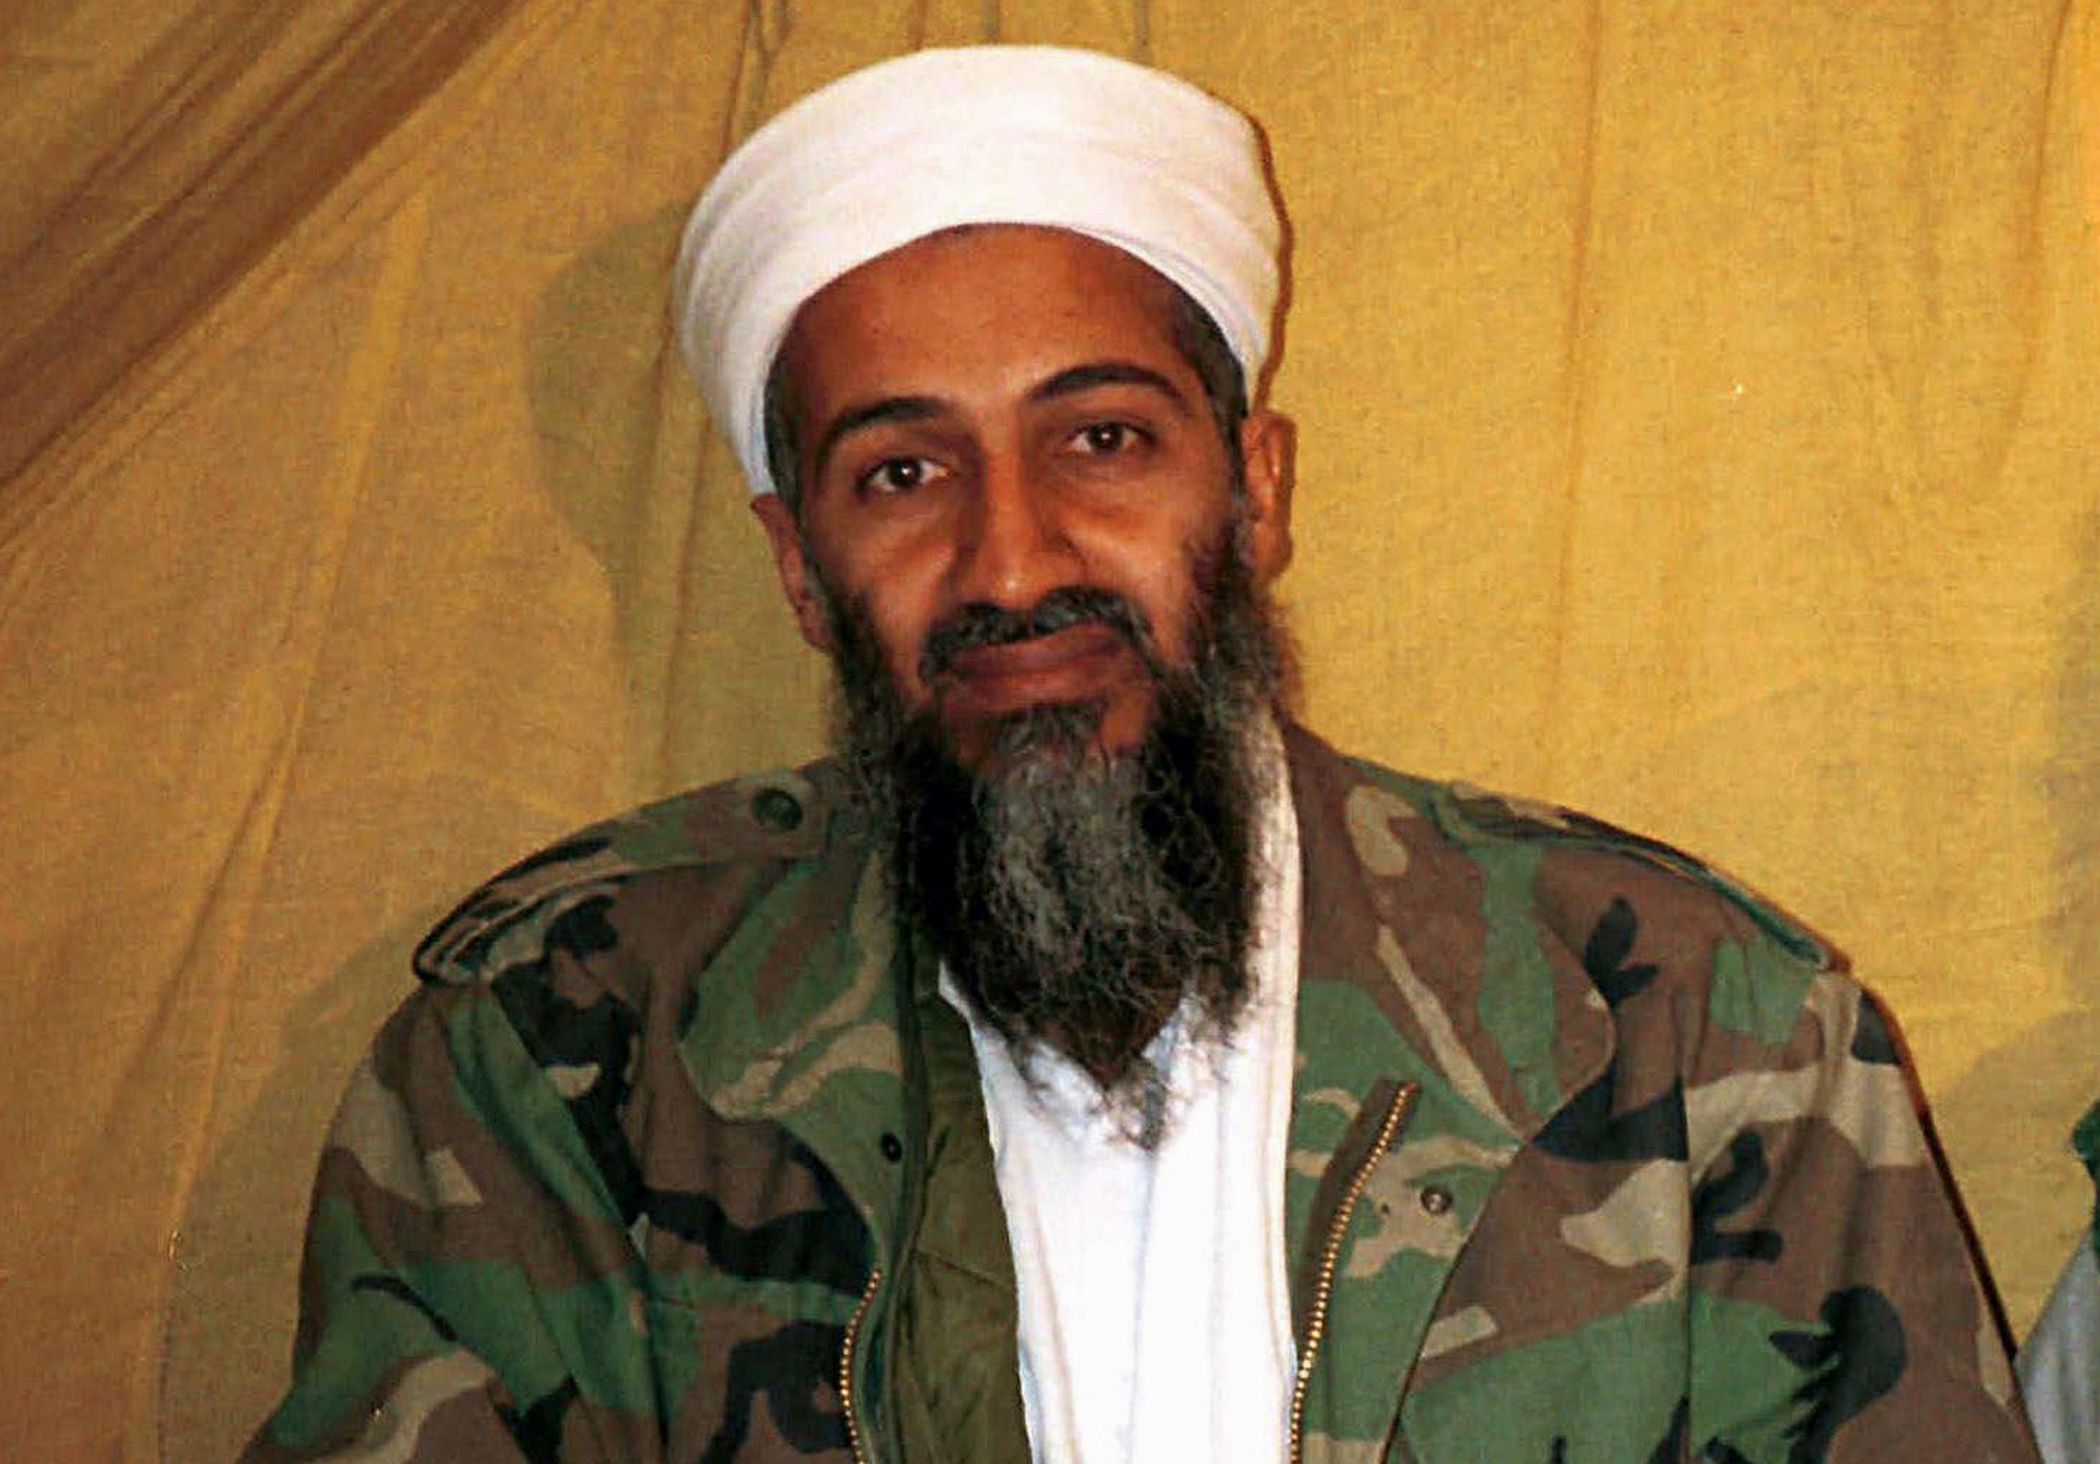 The Hunt: 7 years after bin Laden's death, what have we learned?